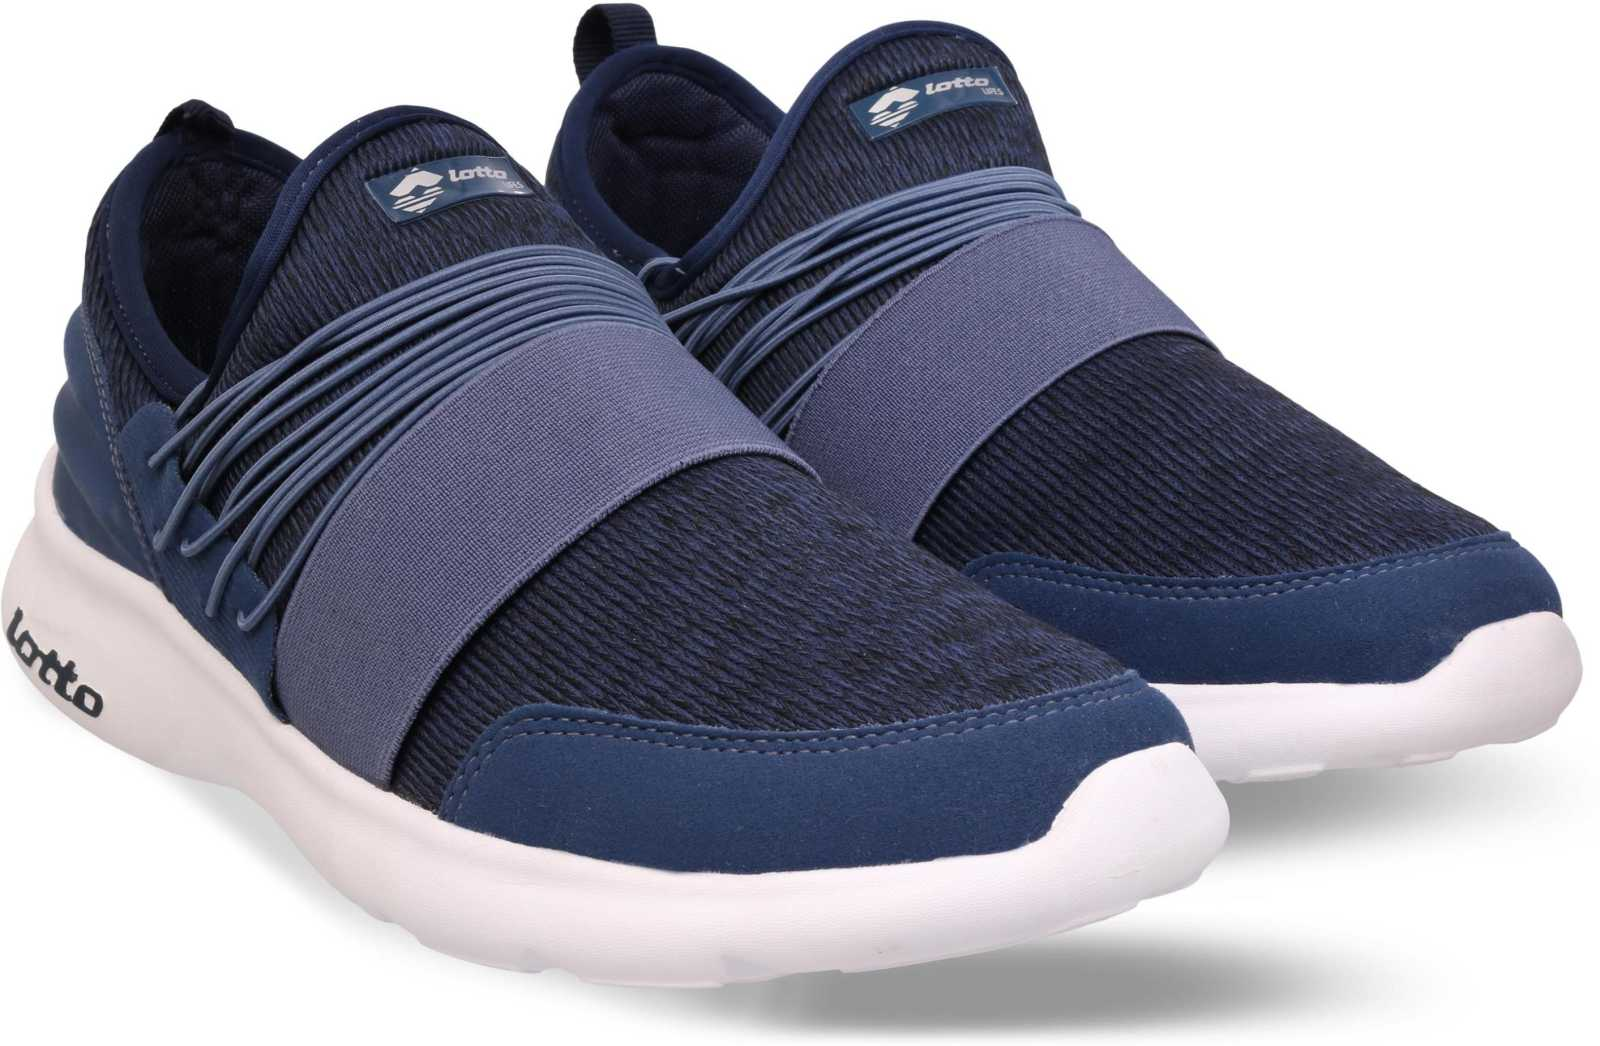 Lotto | Lotto Men's Mid Night Navy/White Training Shoes